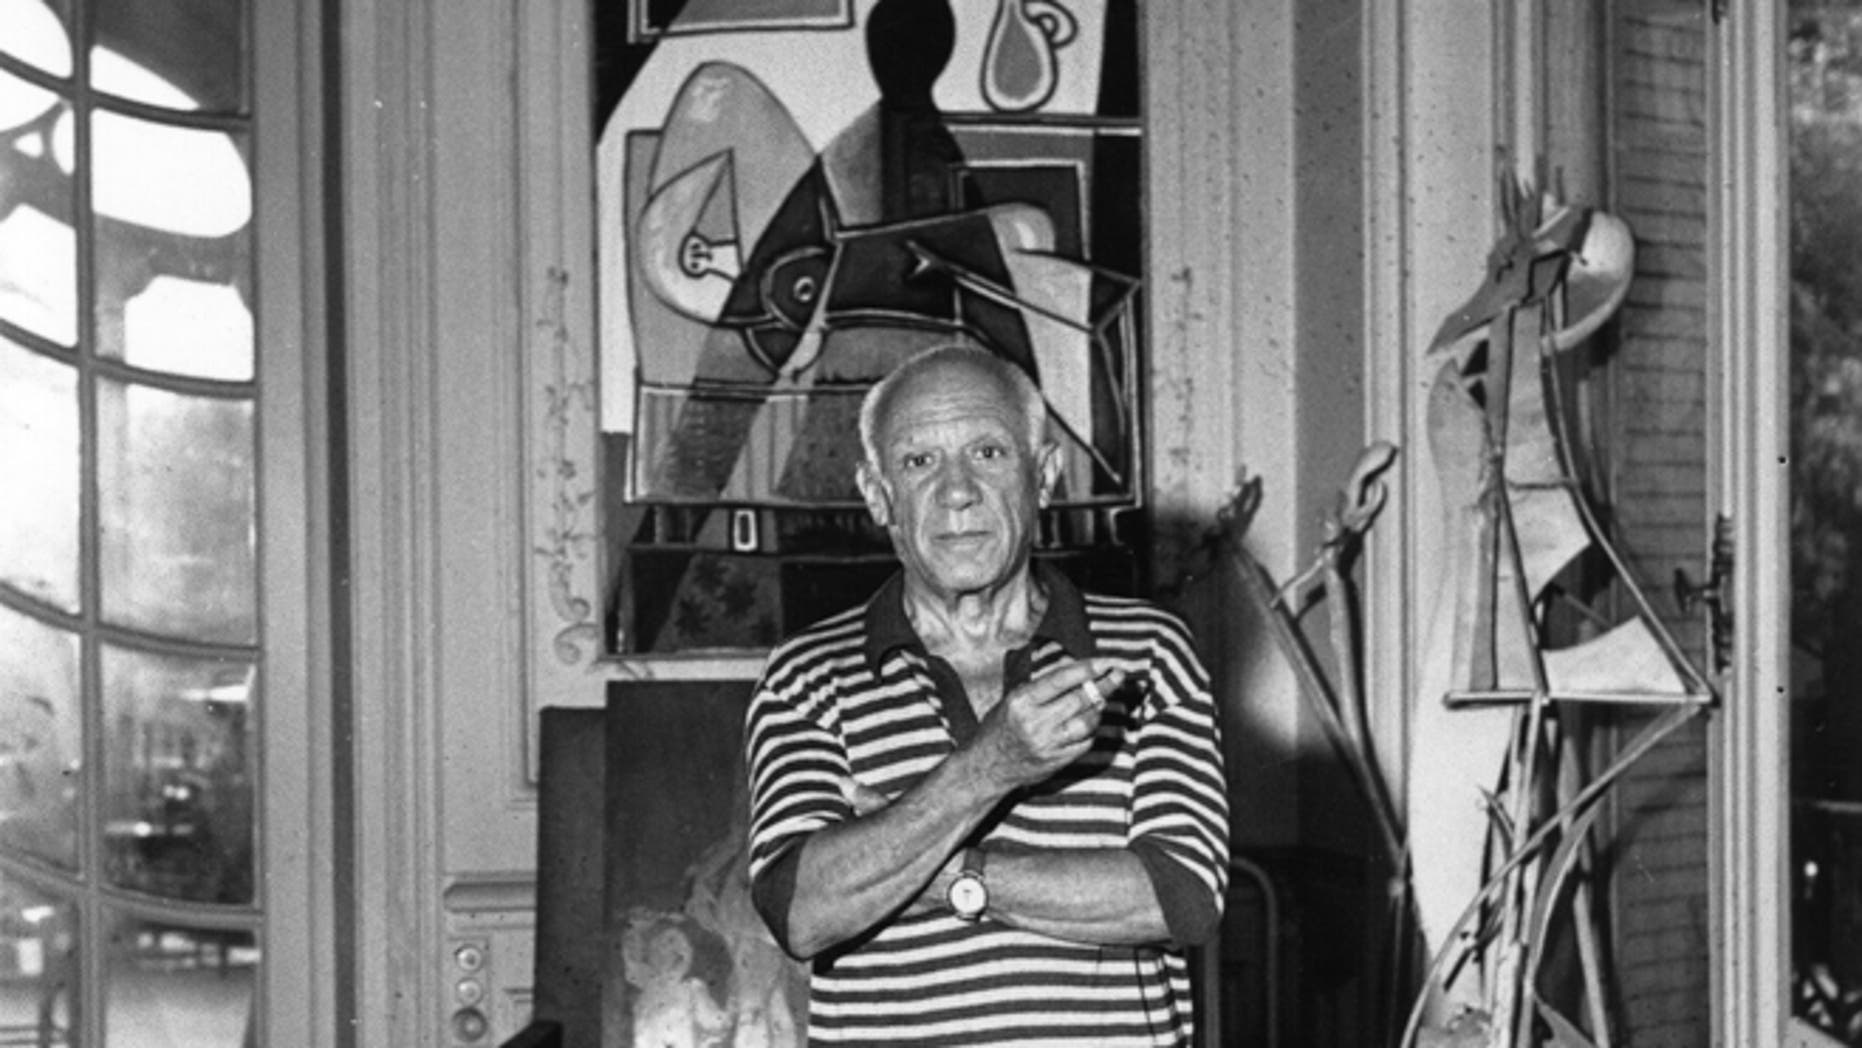 29th September 1955:  Spanish painter Pablo Picasso (1881 - 1973) in his villa 'La Californie' at Cannes.  (Photo by George Stroud/Express/Getty Images)